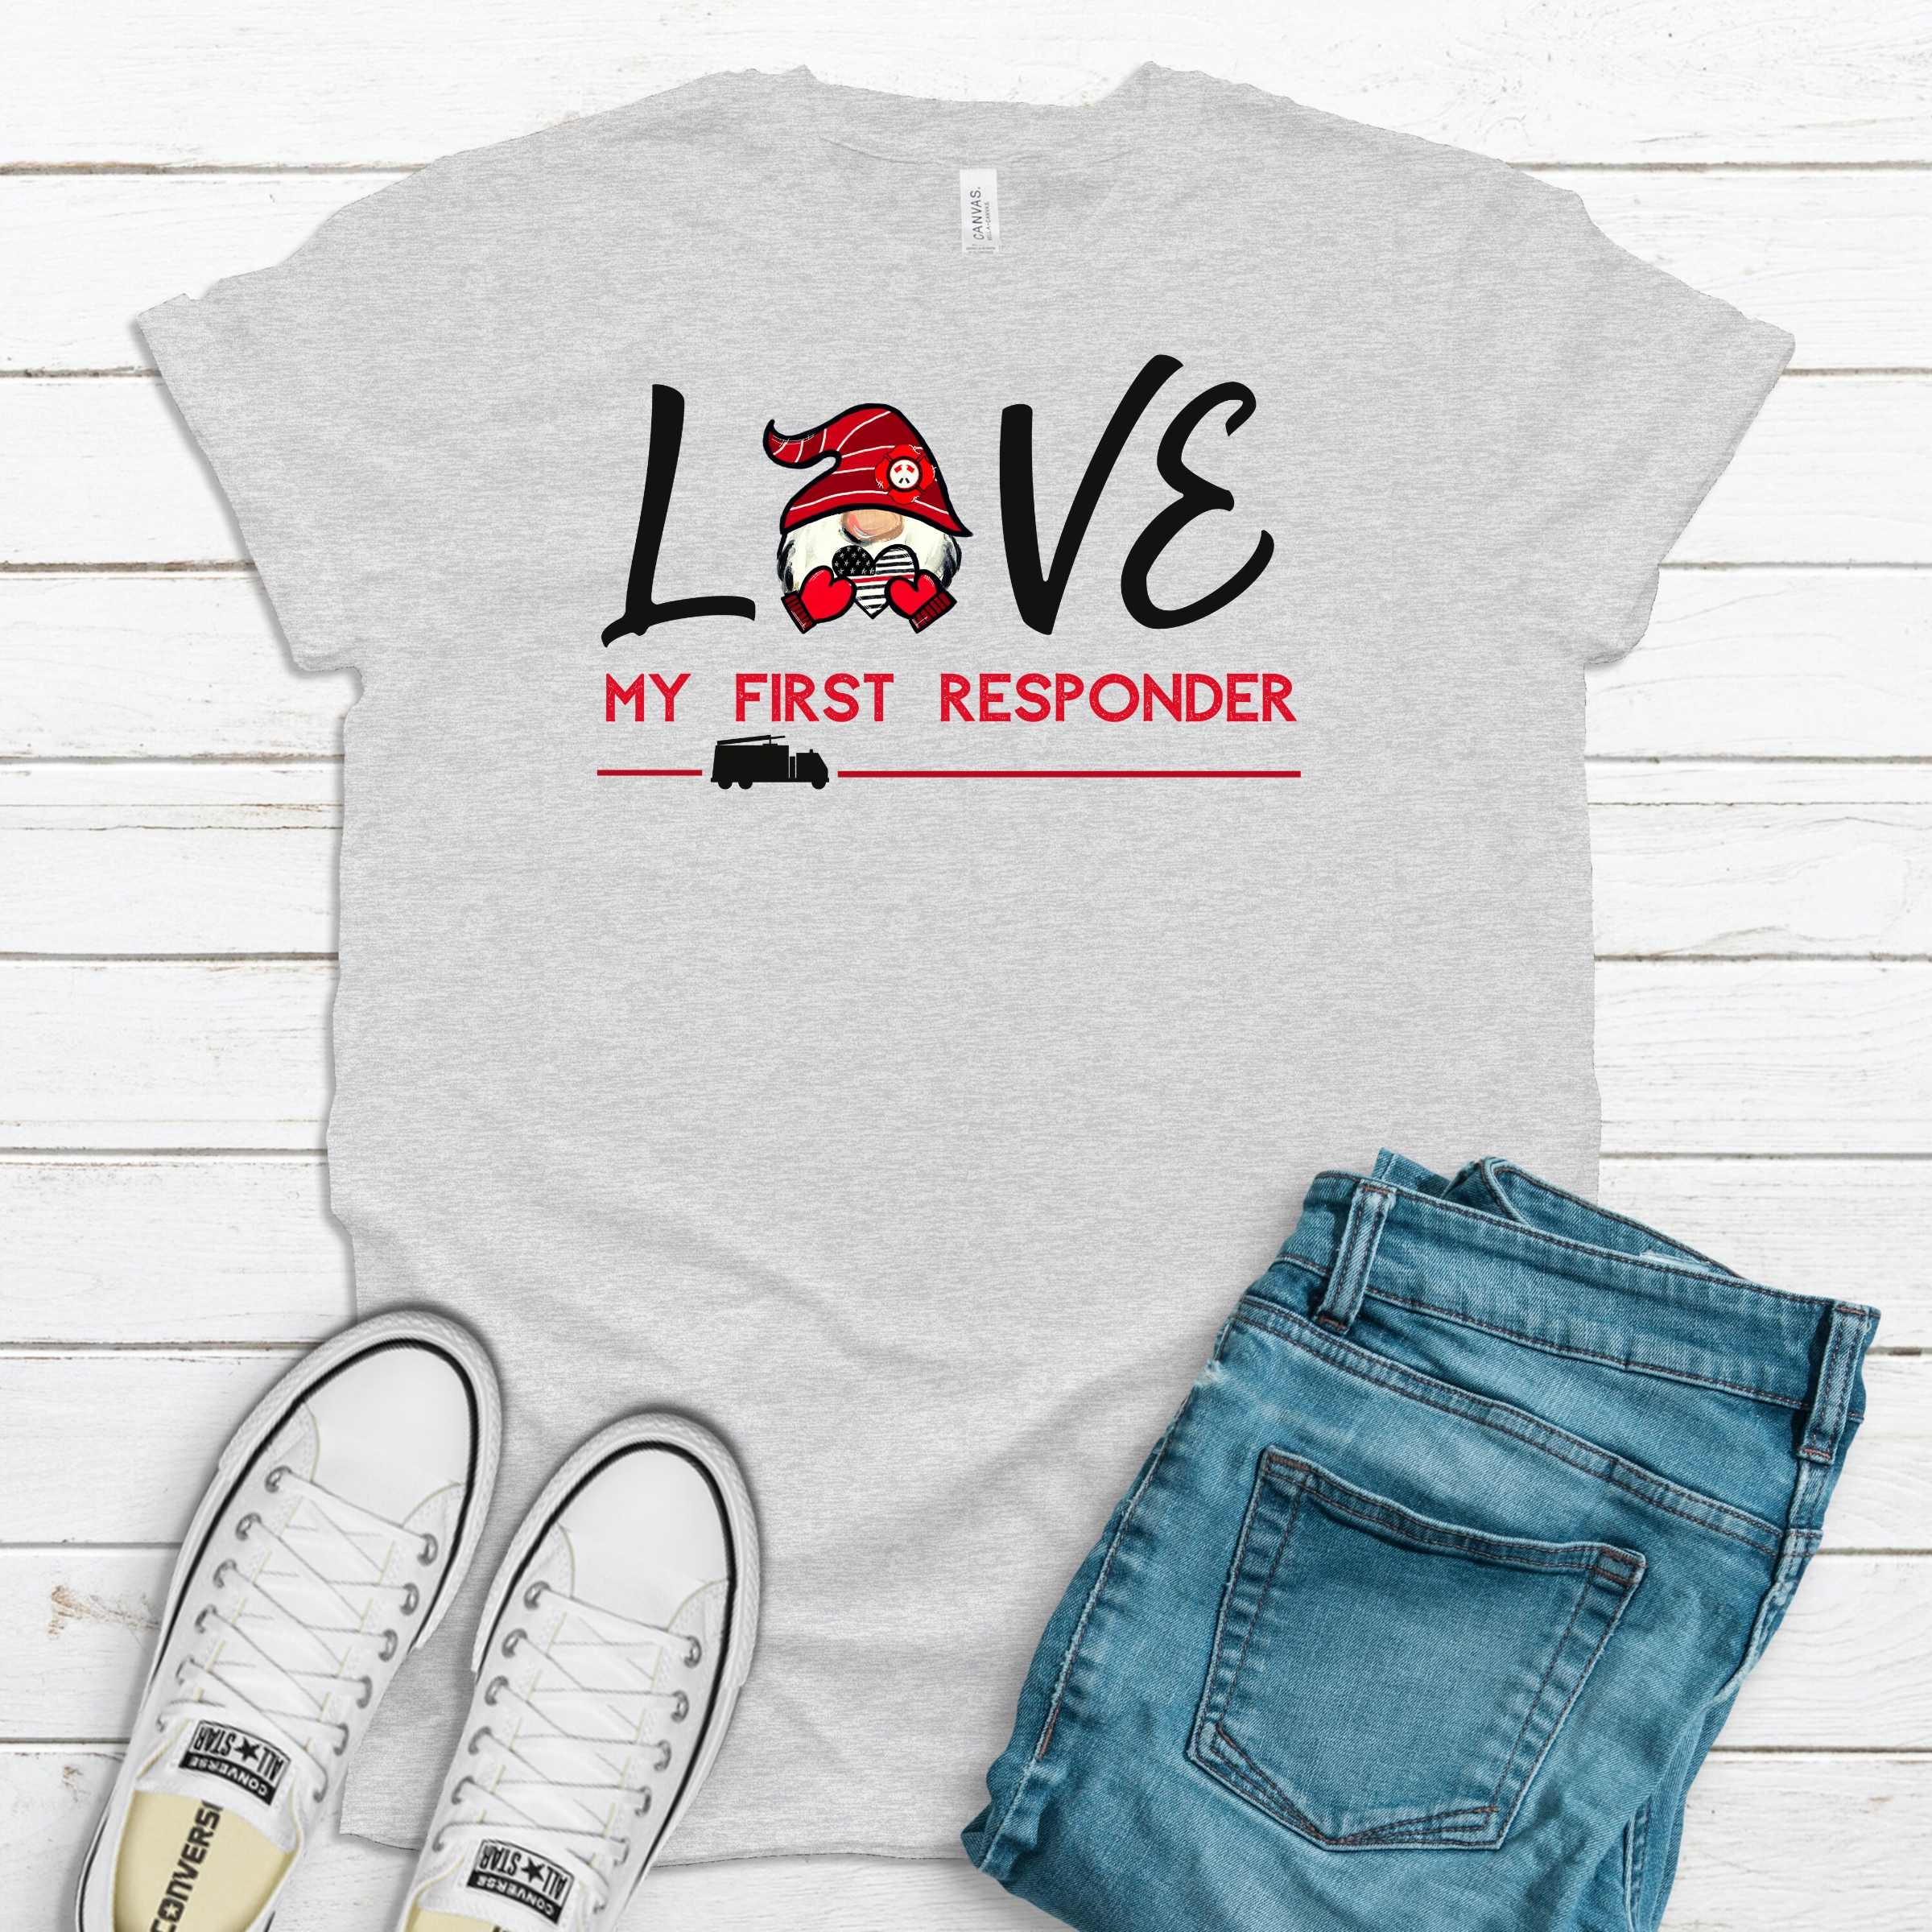 S - Love My First Responder Fire - Ash Gray Shirt-Shop-Wholesale-Womens-Boutique-Custom-Graphic-Tees-Branding-Gifts